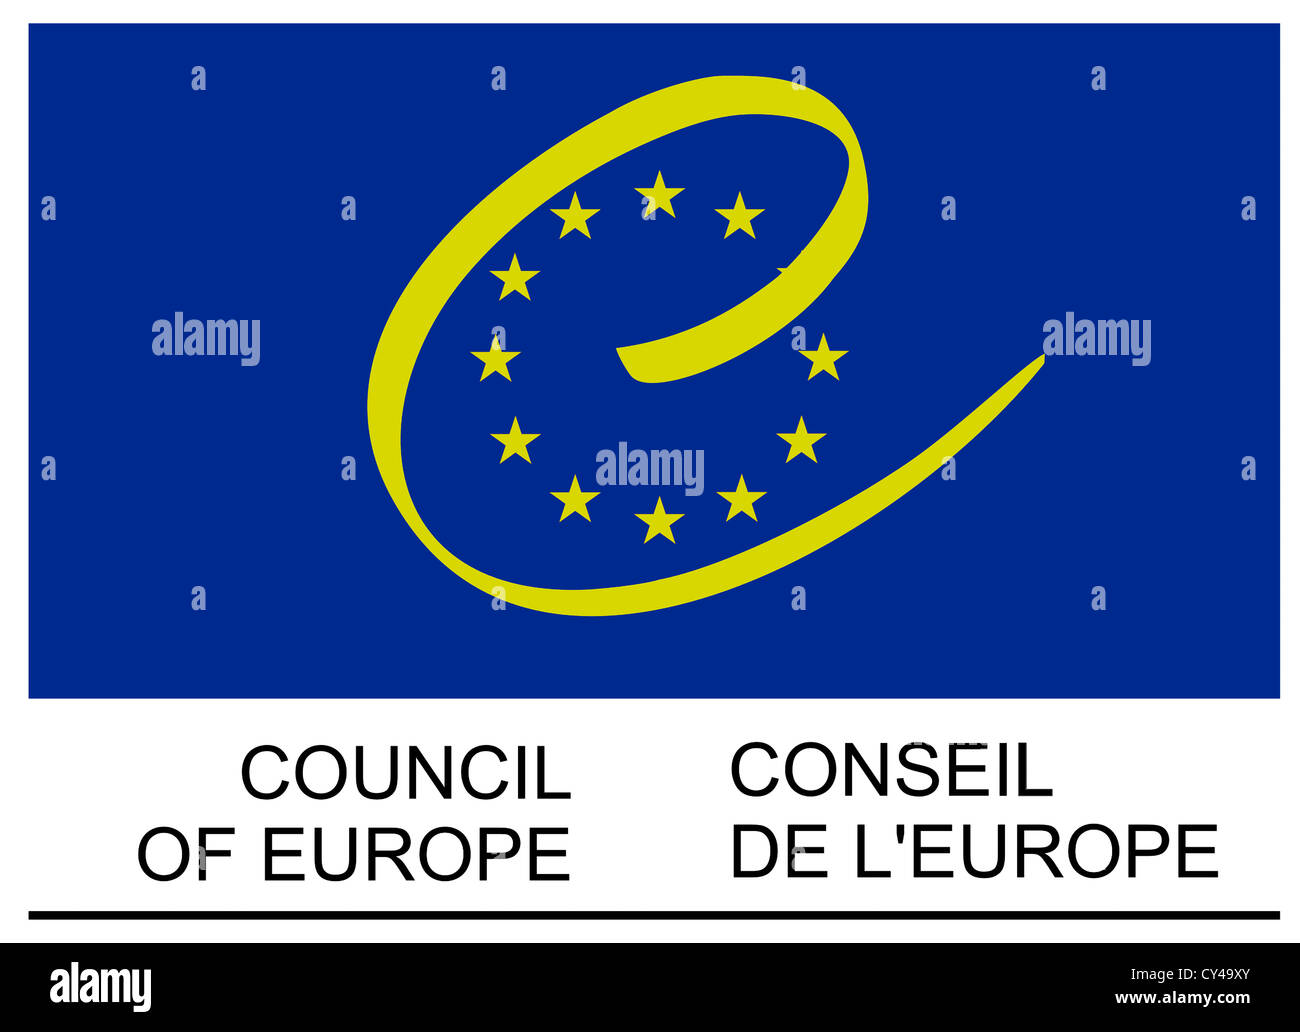 Logo of the Council of Europe based in Strasbourg. - Stock Image